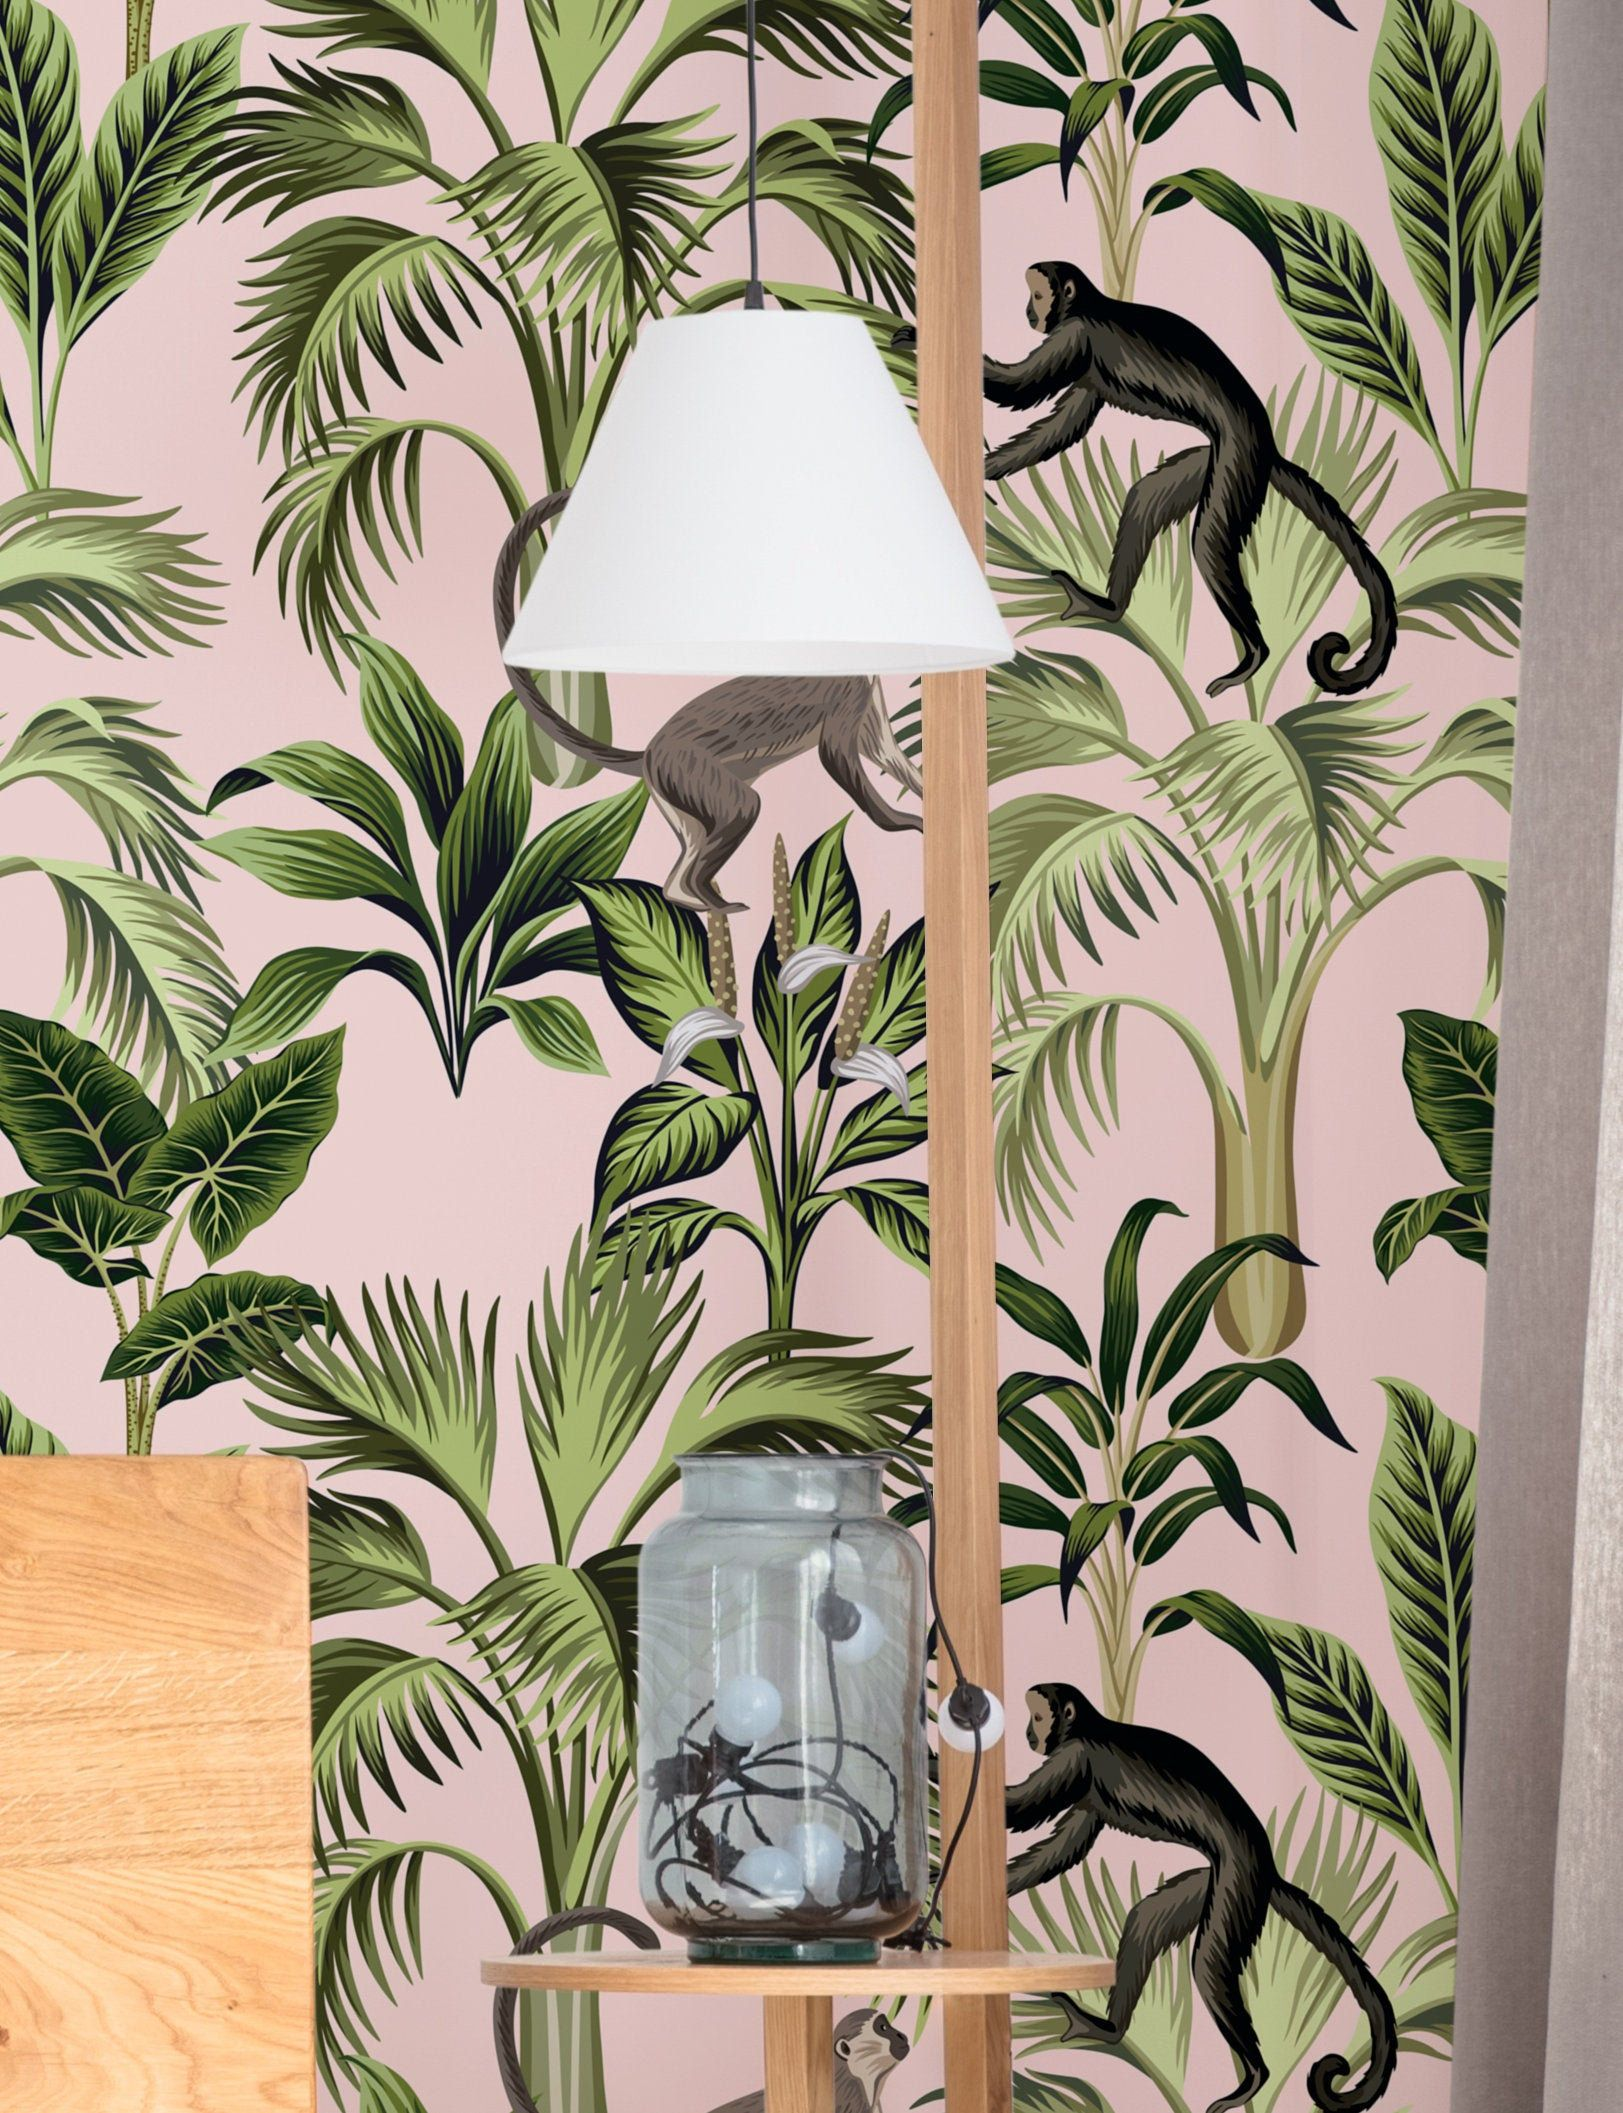 Pink Jungle Wallpaper Peel And Stick Vintage Wall Mural Etsy Pink Jungle Wallpaper Jungle Wallpaper Removable Wallpaper